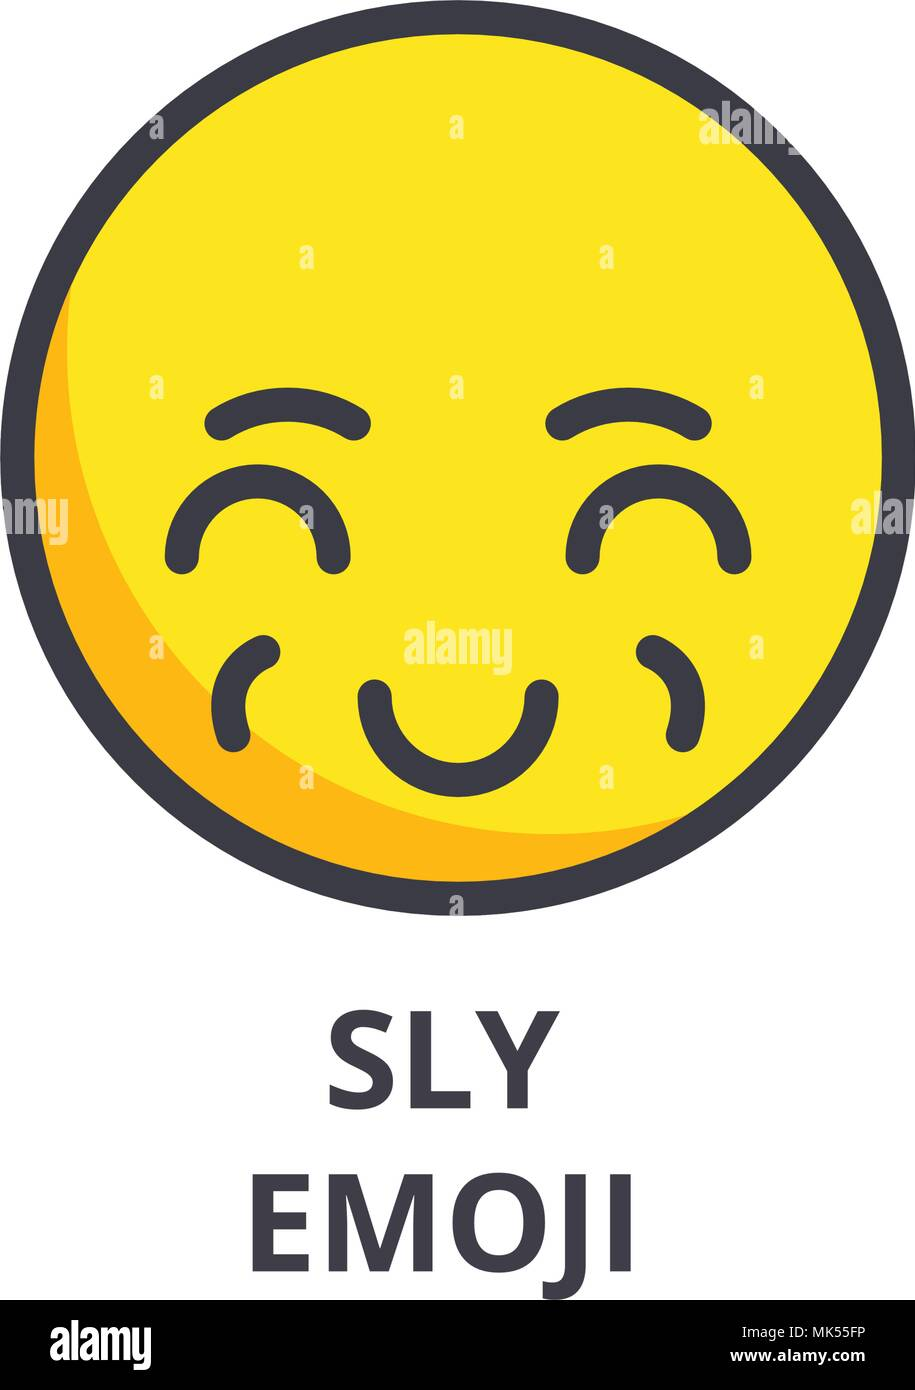 sly emoji vector line icon, sign, illustration on background, editable strokes - Stock Vector